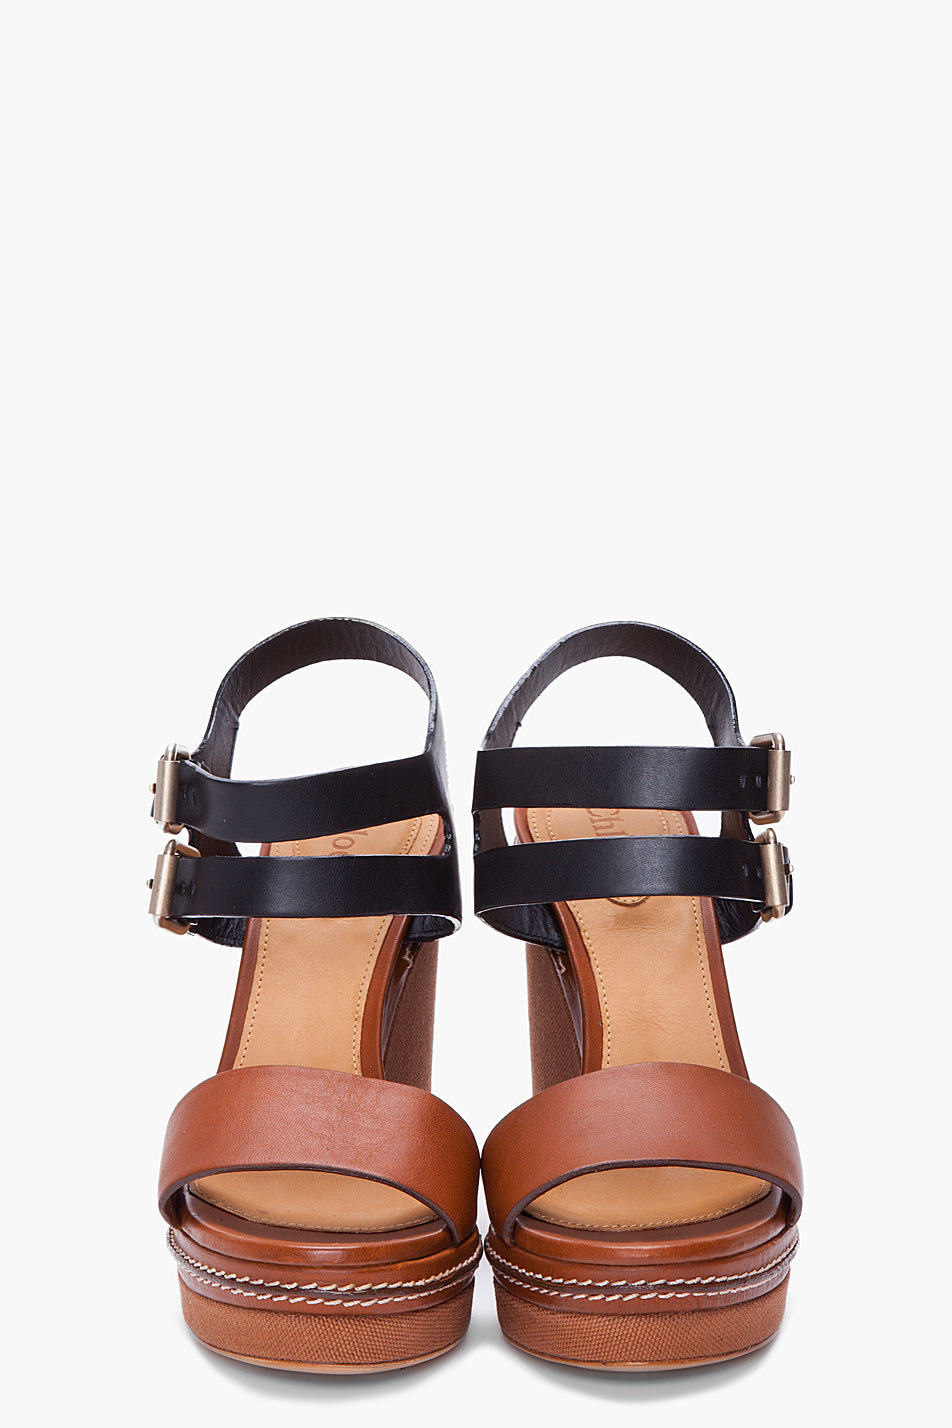 Chlo 233 Black And Brown Wedges Lyst